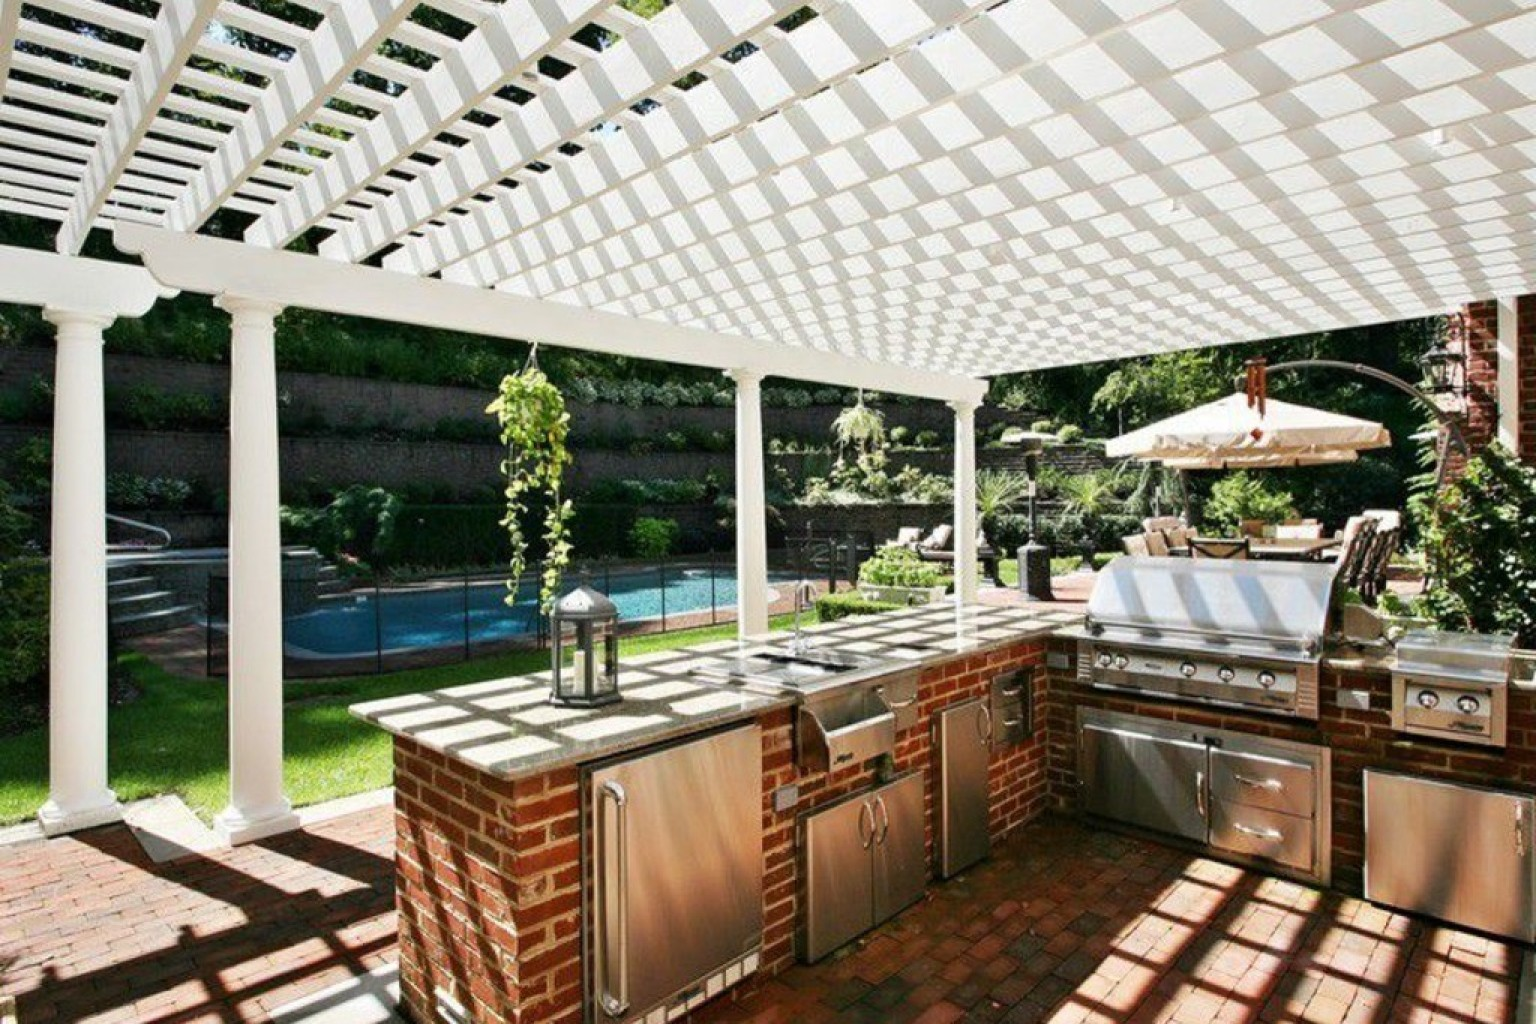 extraordinary backyard outdoor kitchen ideas | 14 Incredible Outdoor Kitchens That Go Way Beyond Grills ...